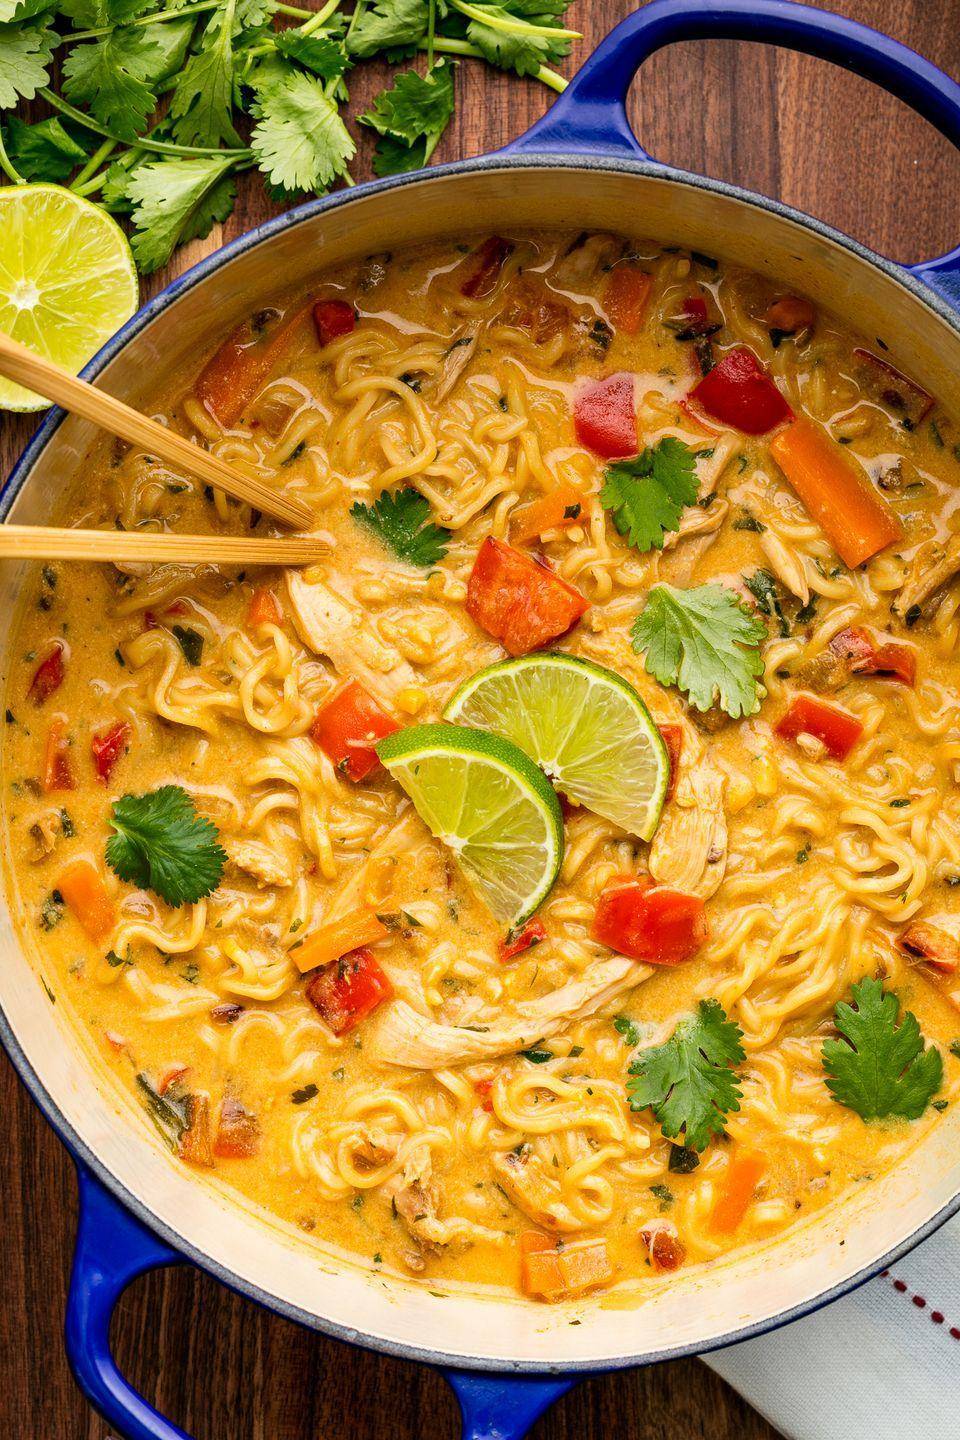 """<p>Step away from the white cup.</p><p>Get the recipe from <a href=""""https://www.delish.com/cooking/recipe-ideas/recipes/a49382/asian-chicken-noodle-recipe/"""" rel=""""nofollow noopener"""" target=""""_blank"""" data-ylk=""""slk:Delish"""" class=""""link rapid-noclick-resp"""">Delish</a>.</p>"""